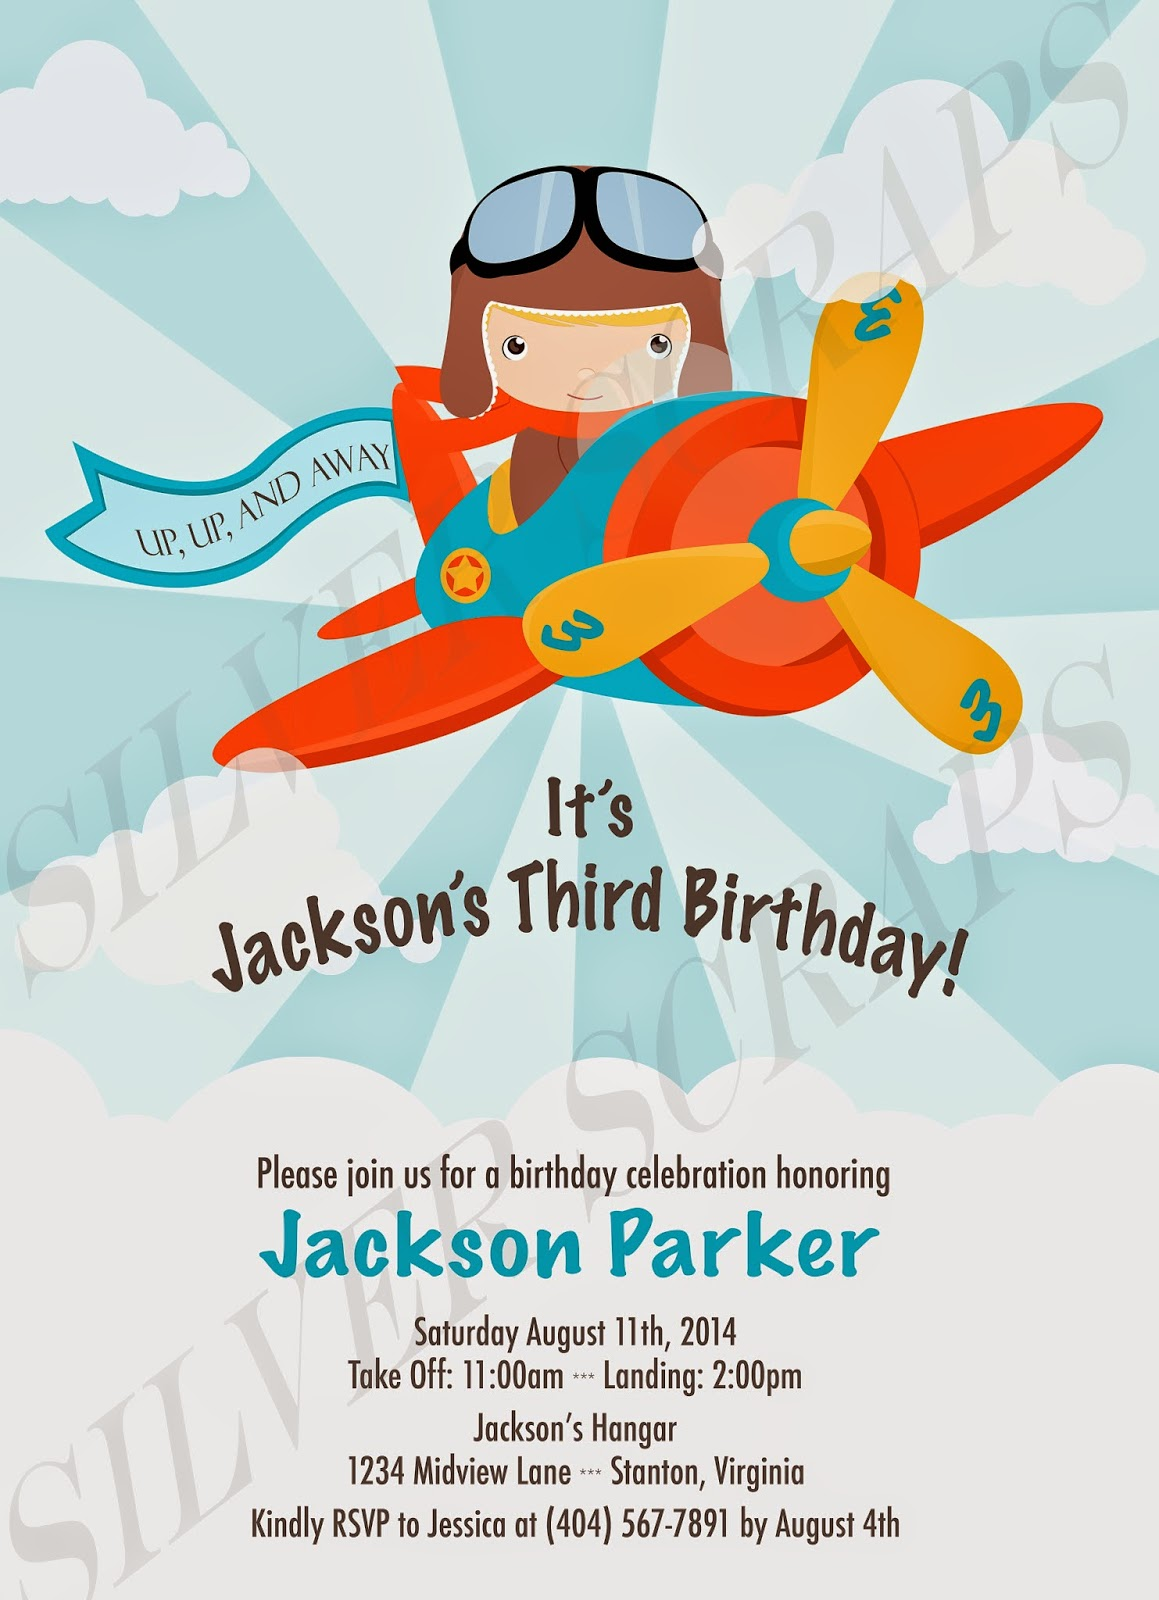 Up, Up, and Away - Custom Digital Airplane Flying in the Clouds Birthday Invitation -Boy Plane Fly Pilot Red Blue Aviator Propellers Orange orange yellow banner up up and away clouds high in the sky